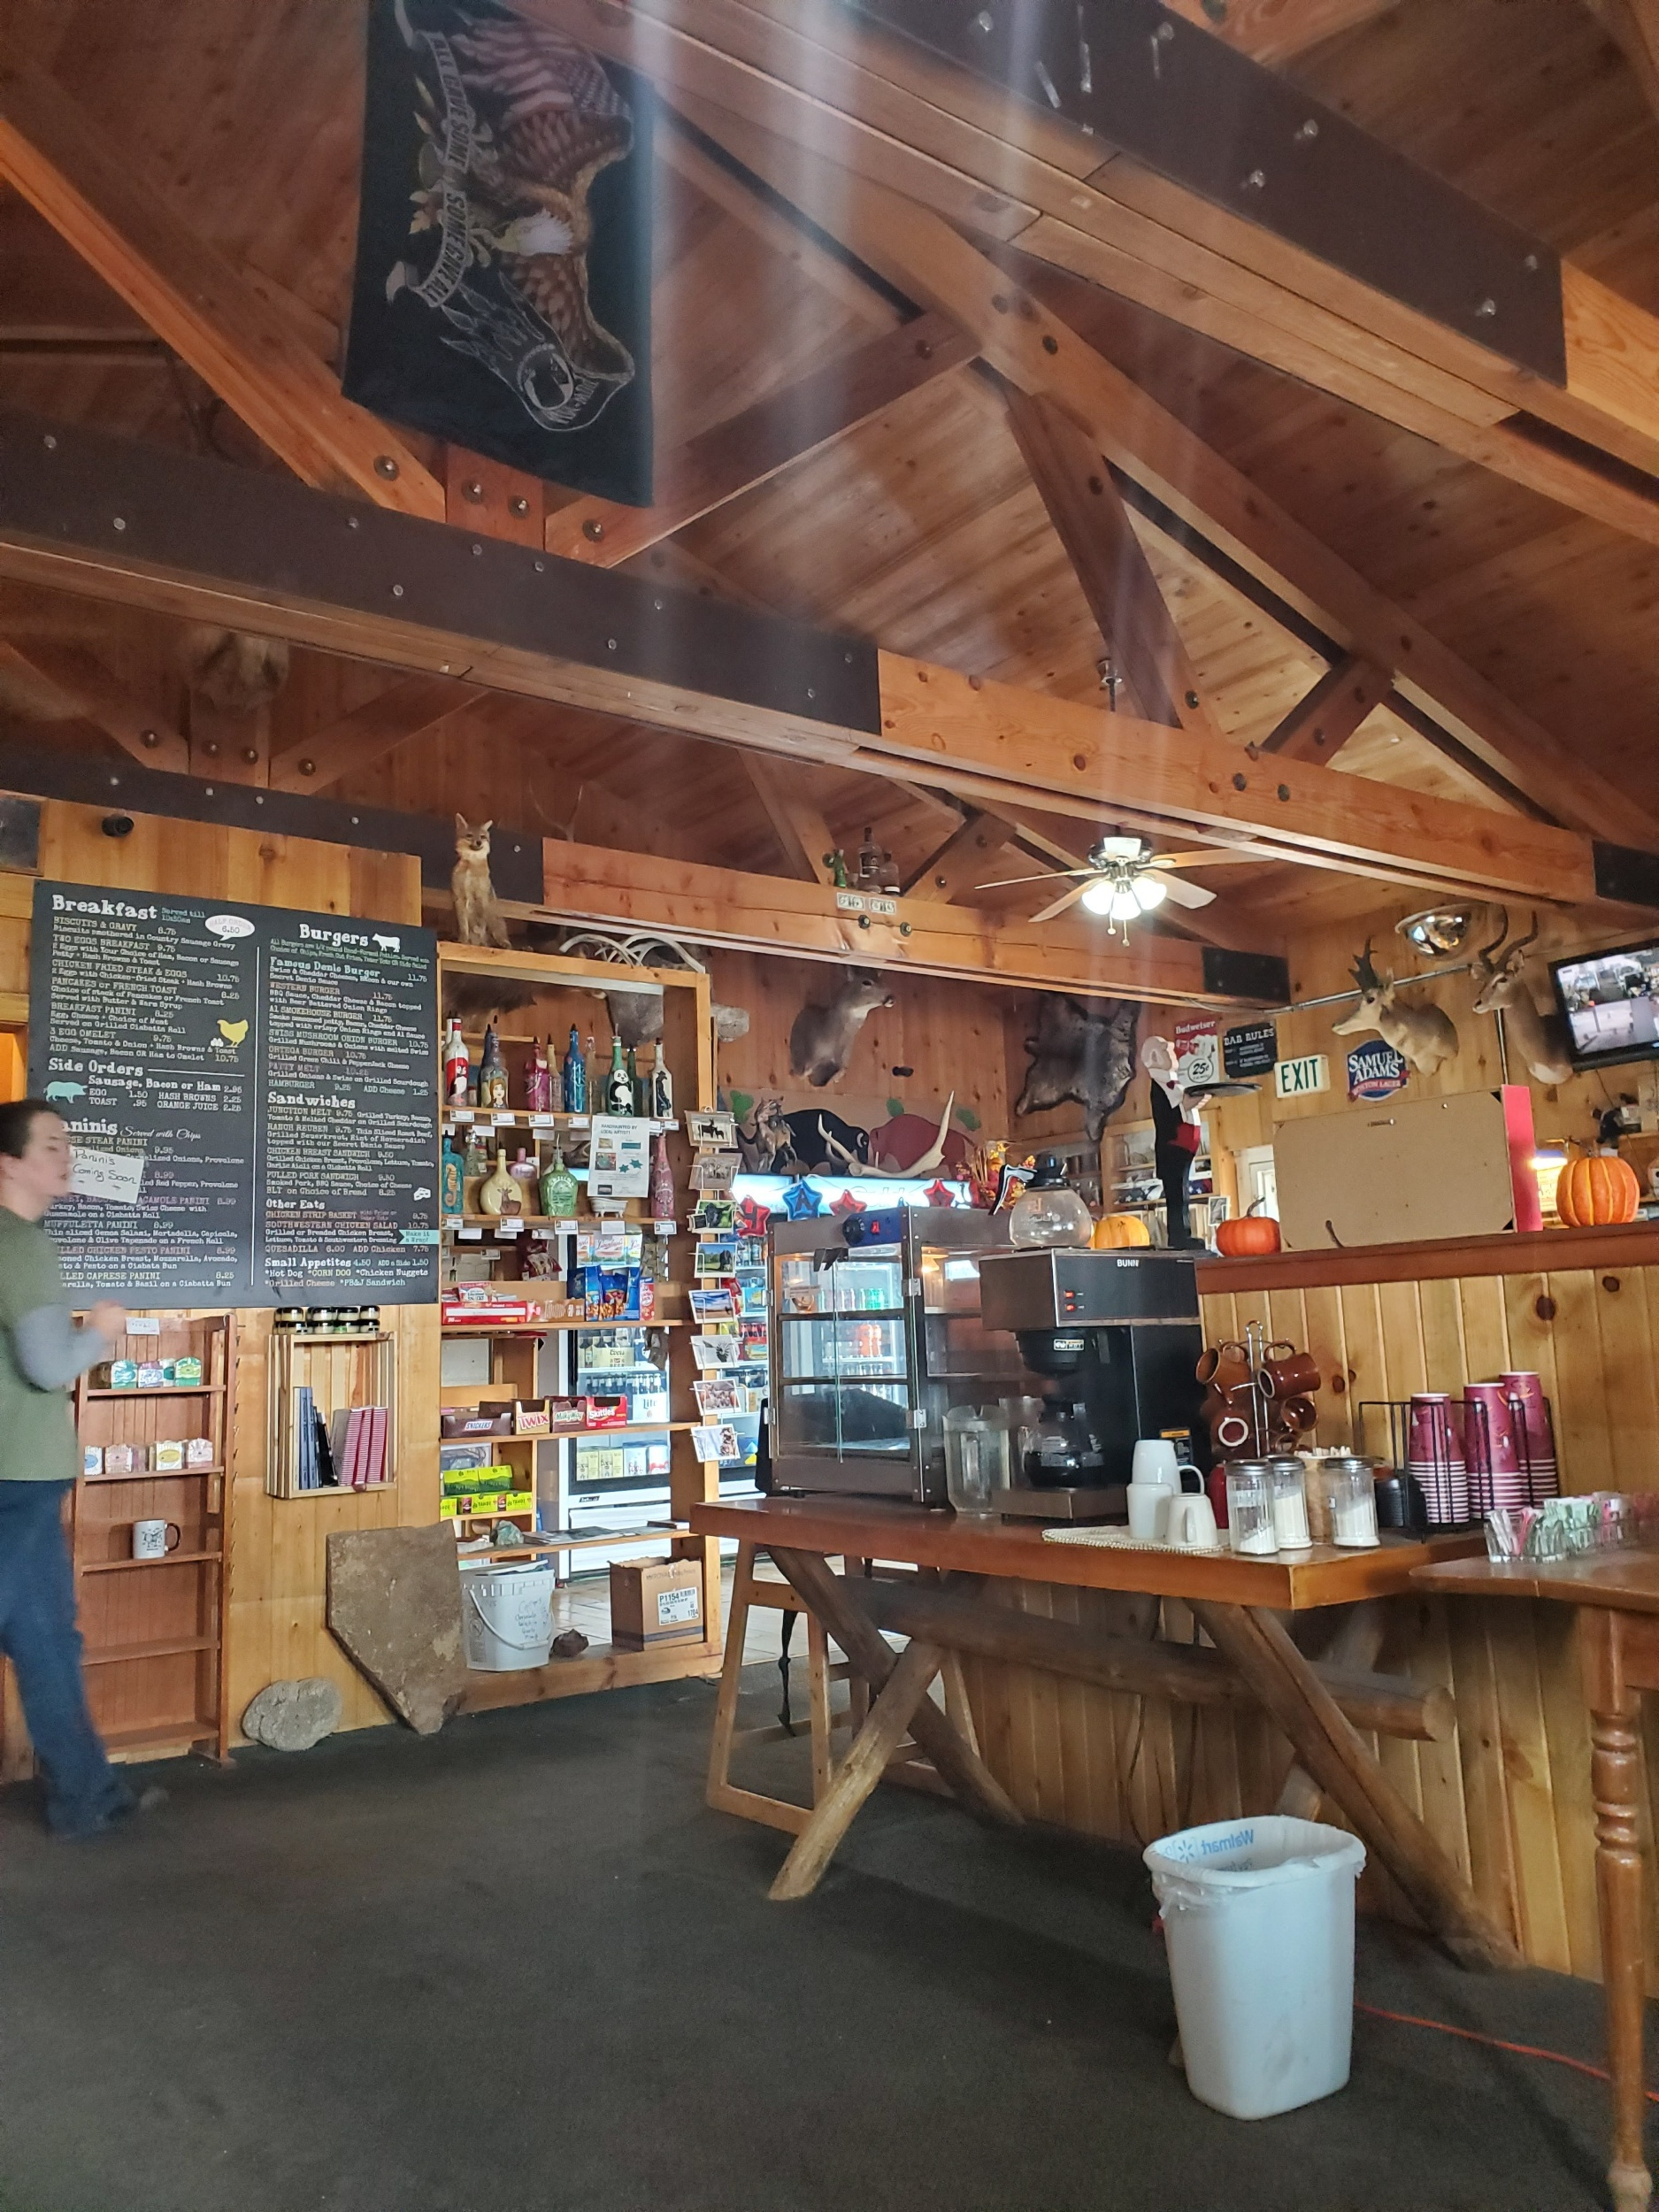 Denio Junction. One heck of an amazing establishment. The owners Bud and Gerogina were flat out amazing. 6 out of 5 stars for how accommodating they were when the weather came in.